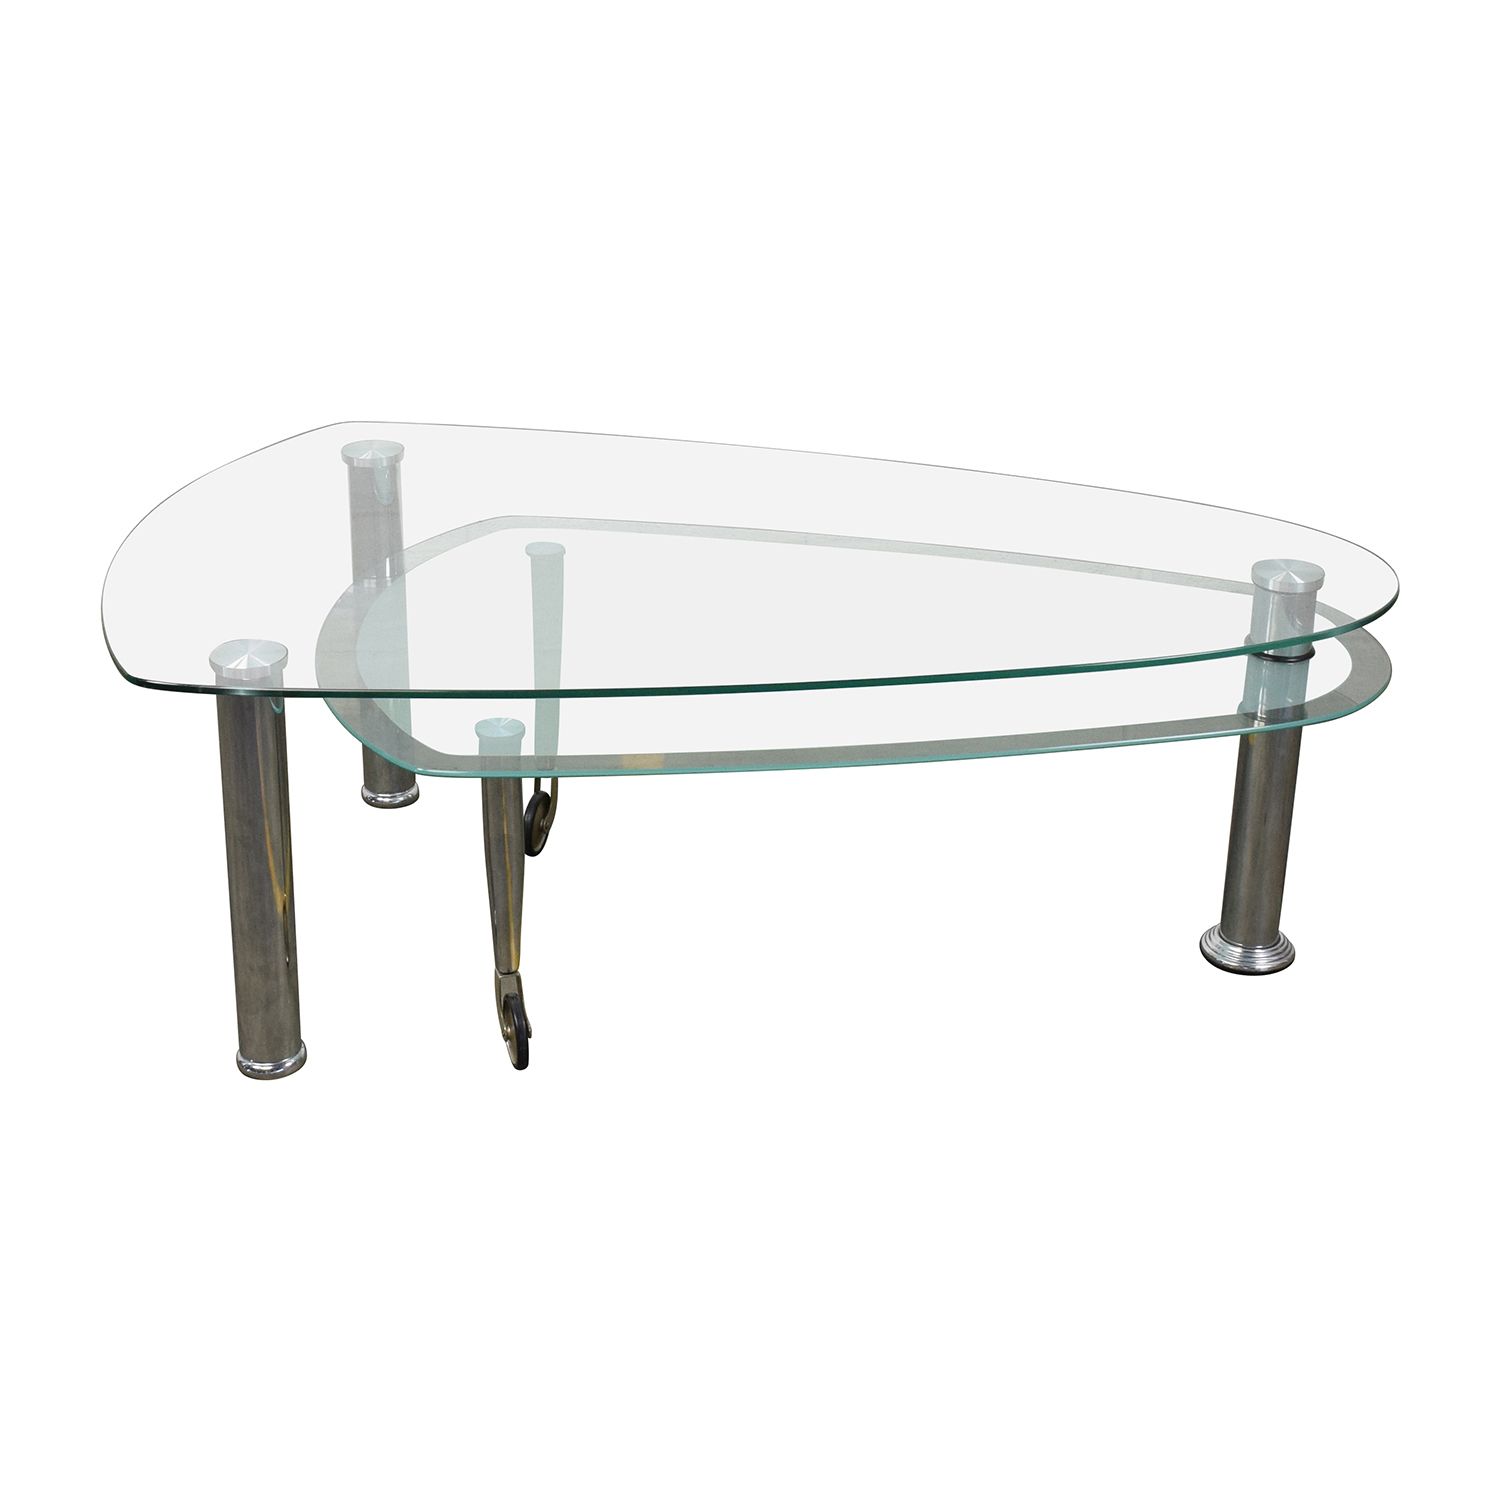 OFF Triangular Rounded Glass and Chrome Table Tables